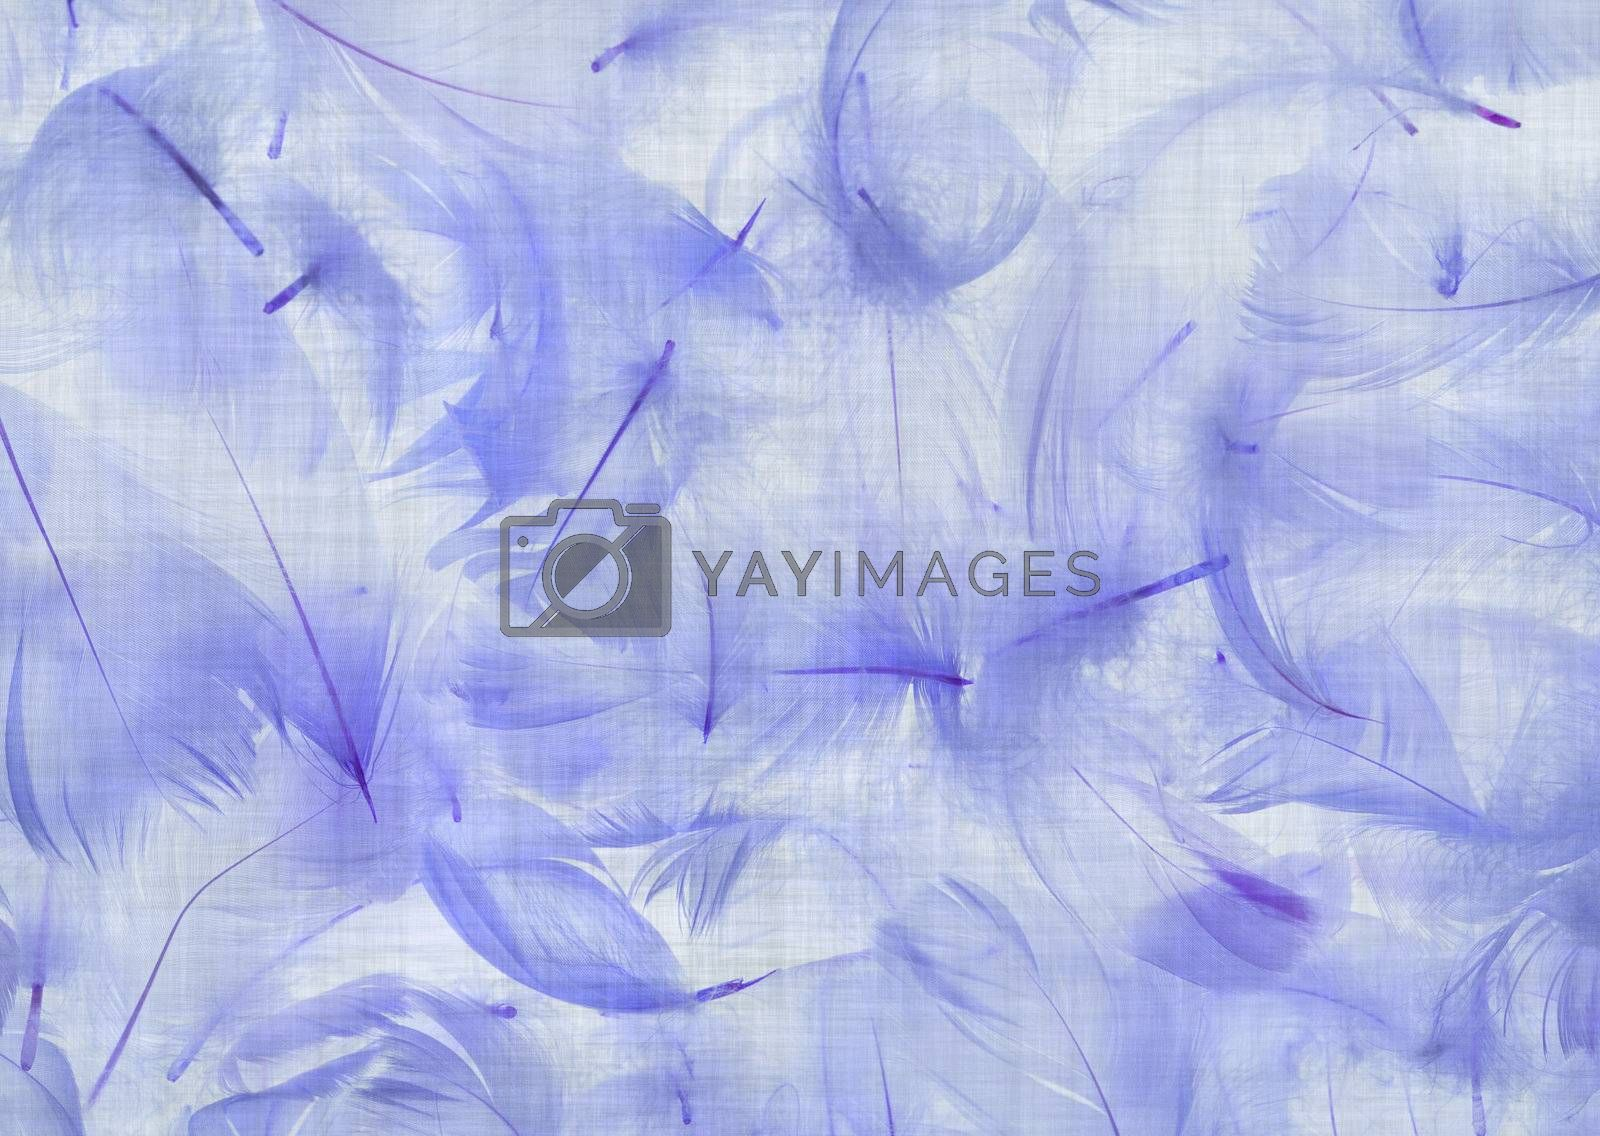 Blue feathers combined with grungy background